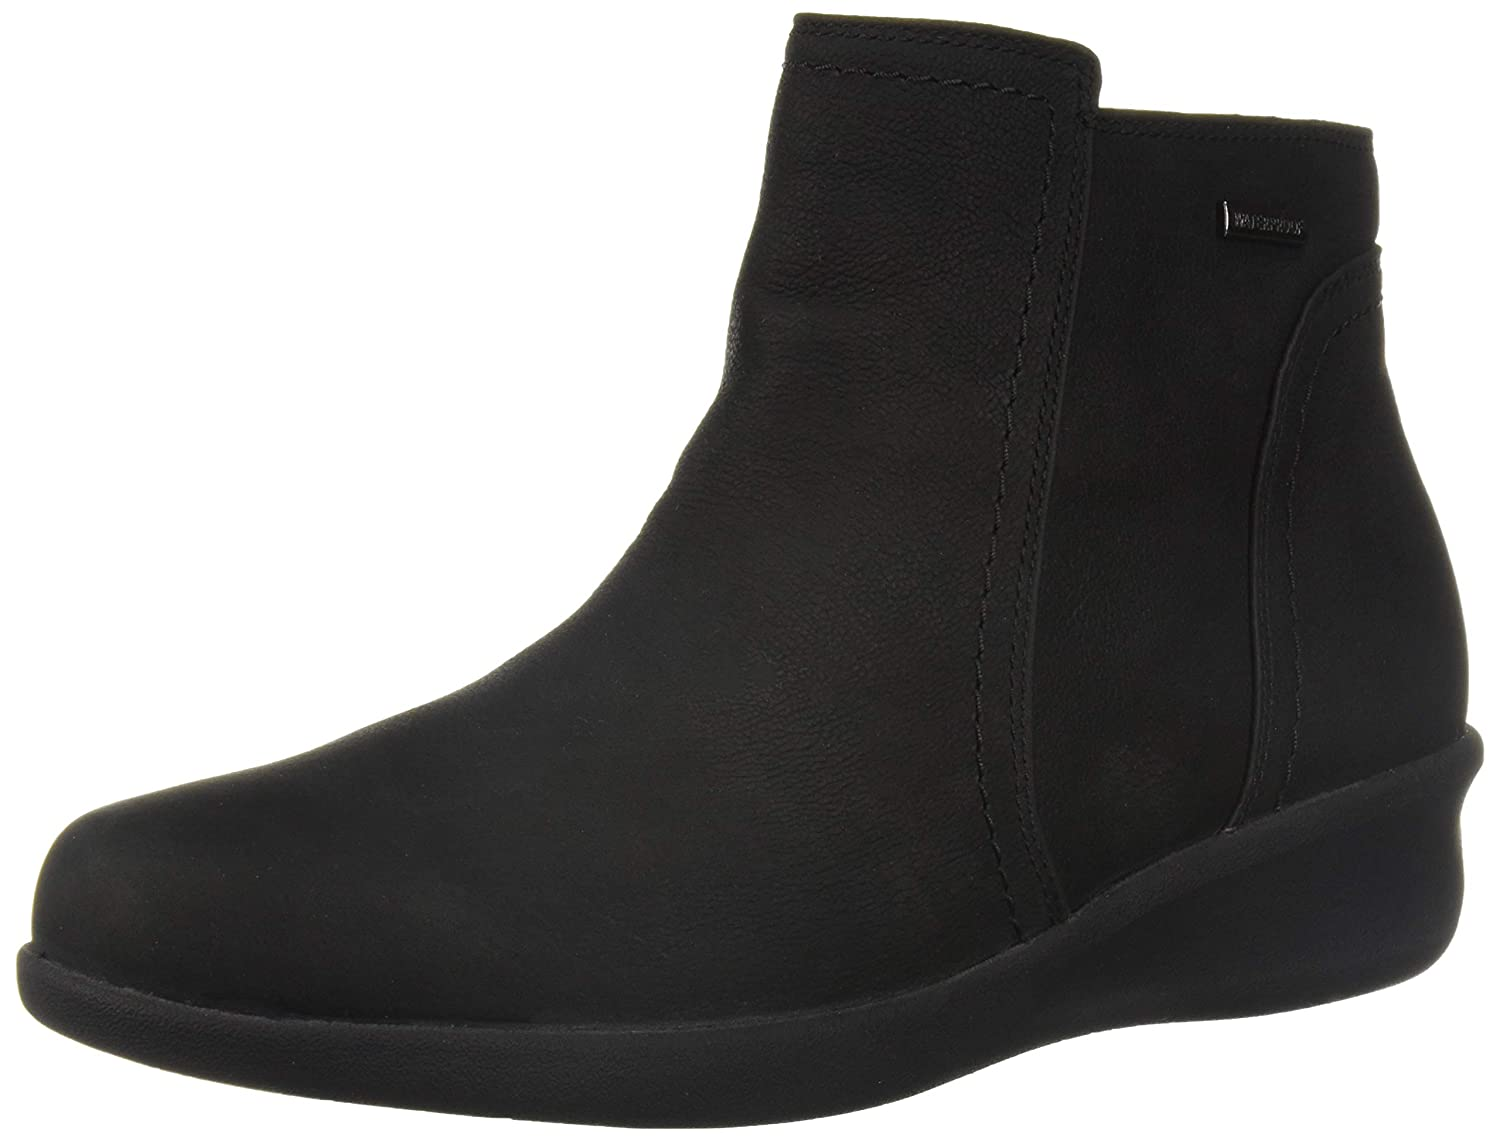 Black Aravon Womens Fairlee Ankle Boot Ankle Boot